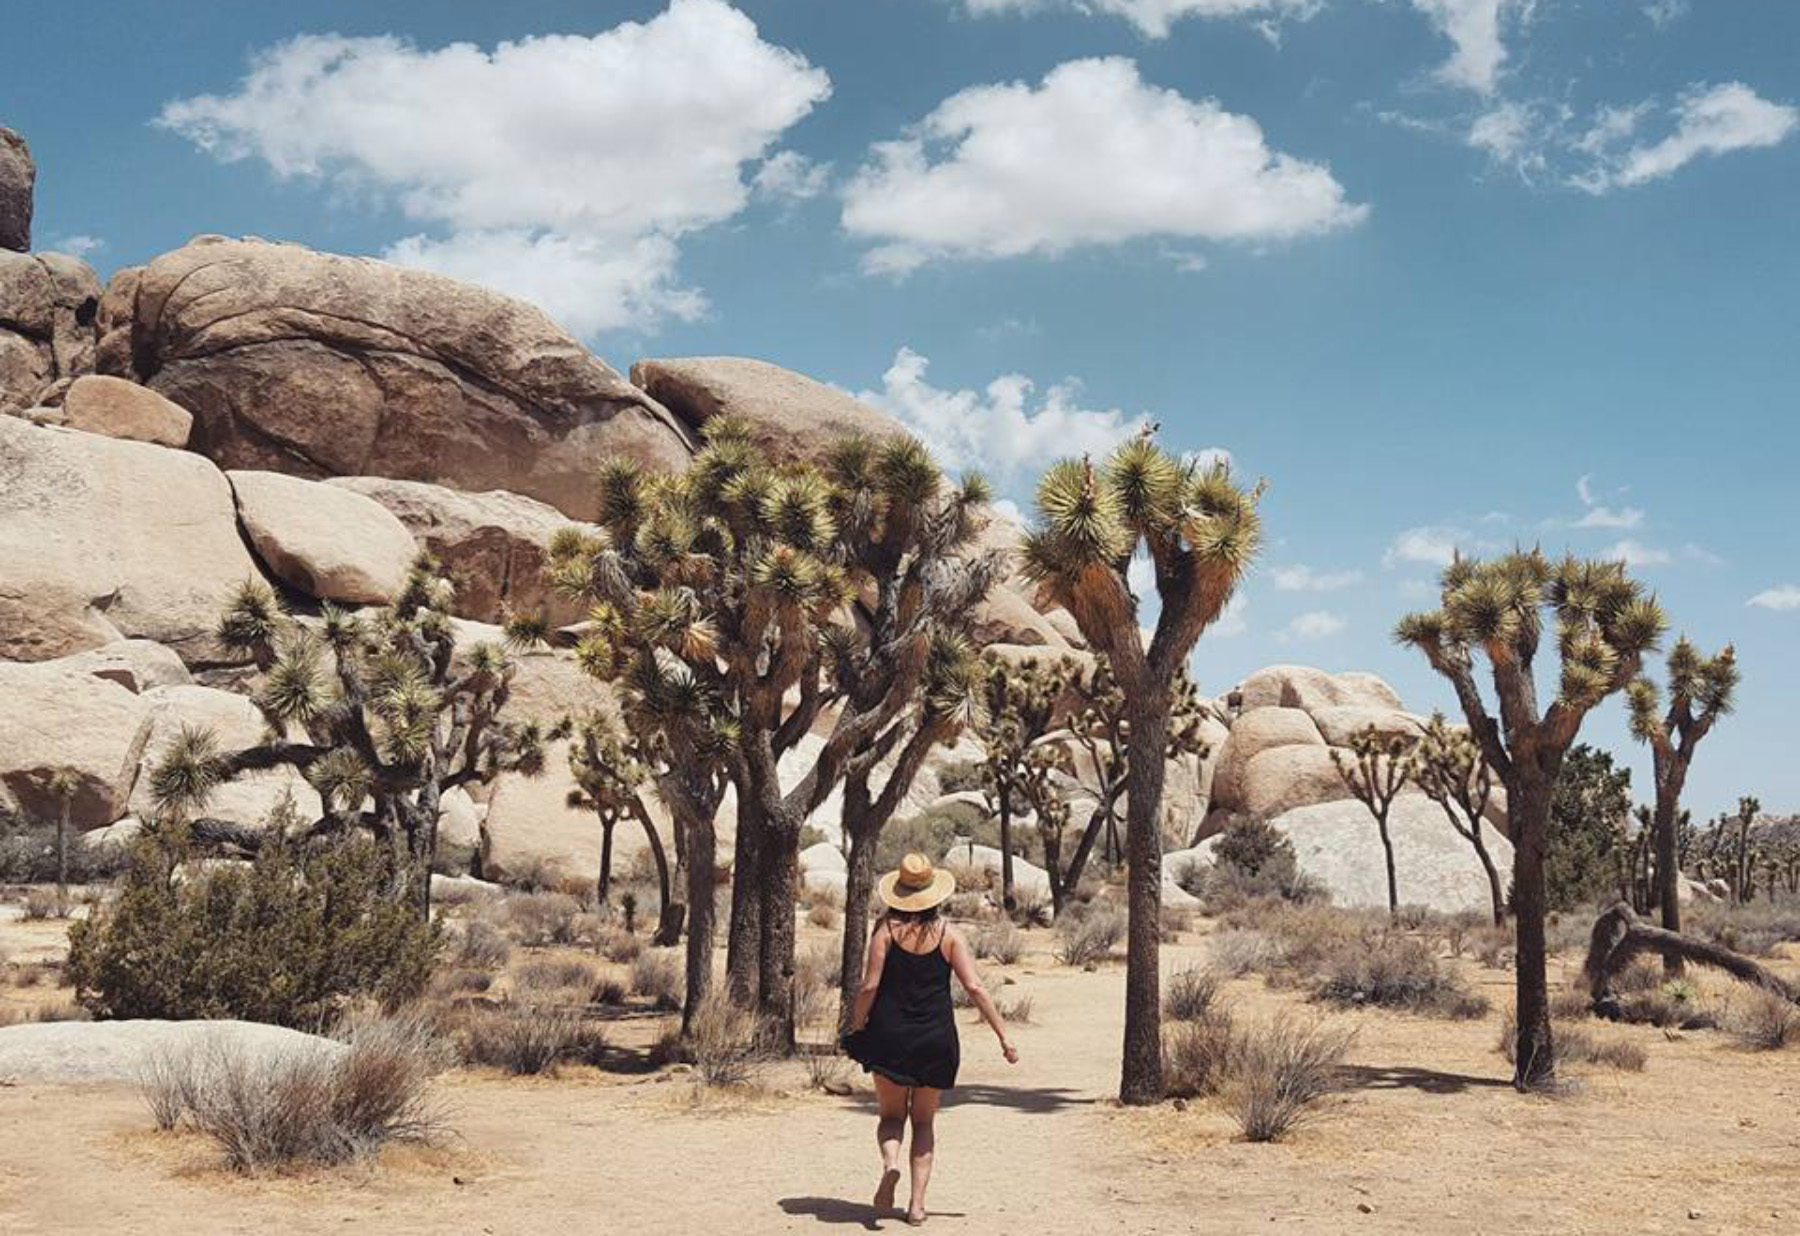 kelly-lane-joshua-tree